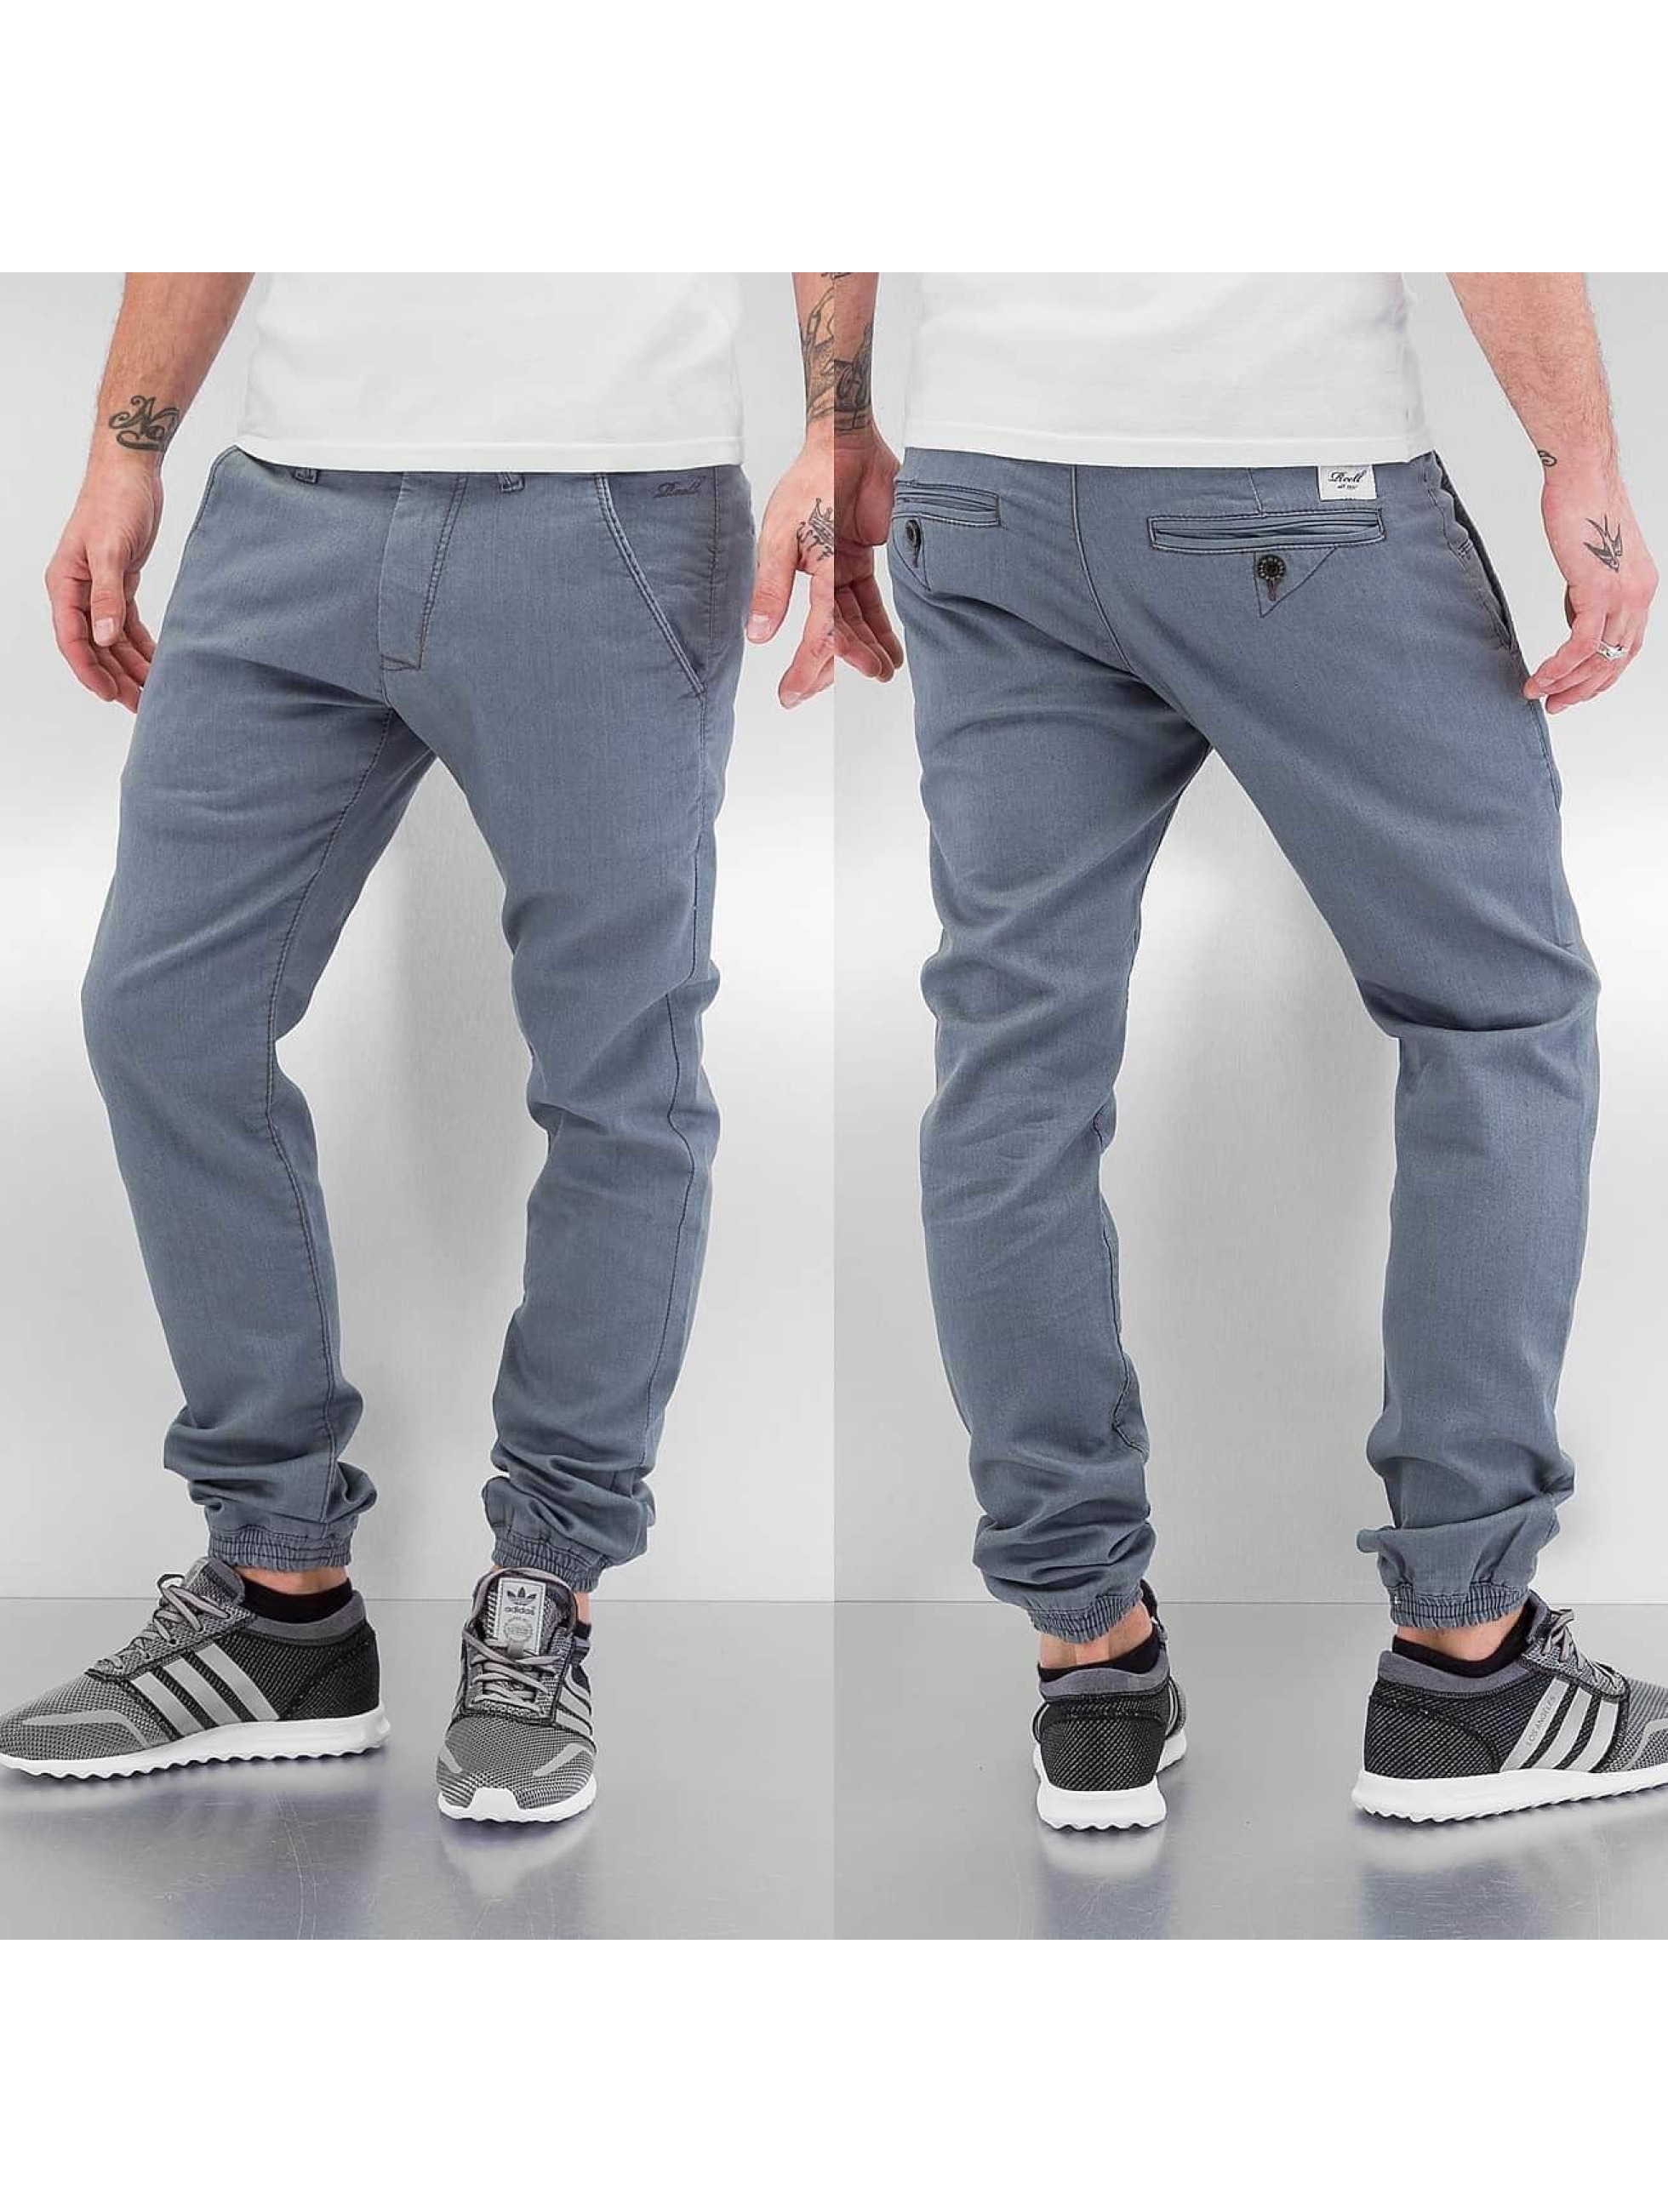 Reell Jeans Chino Jogger grijs